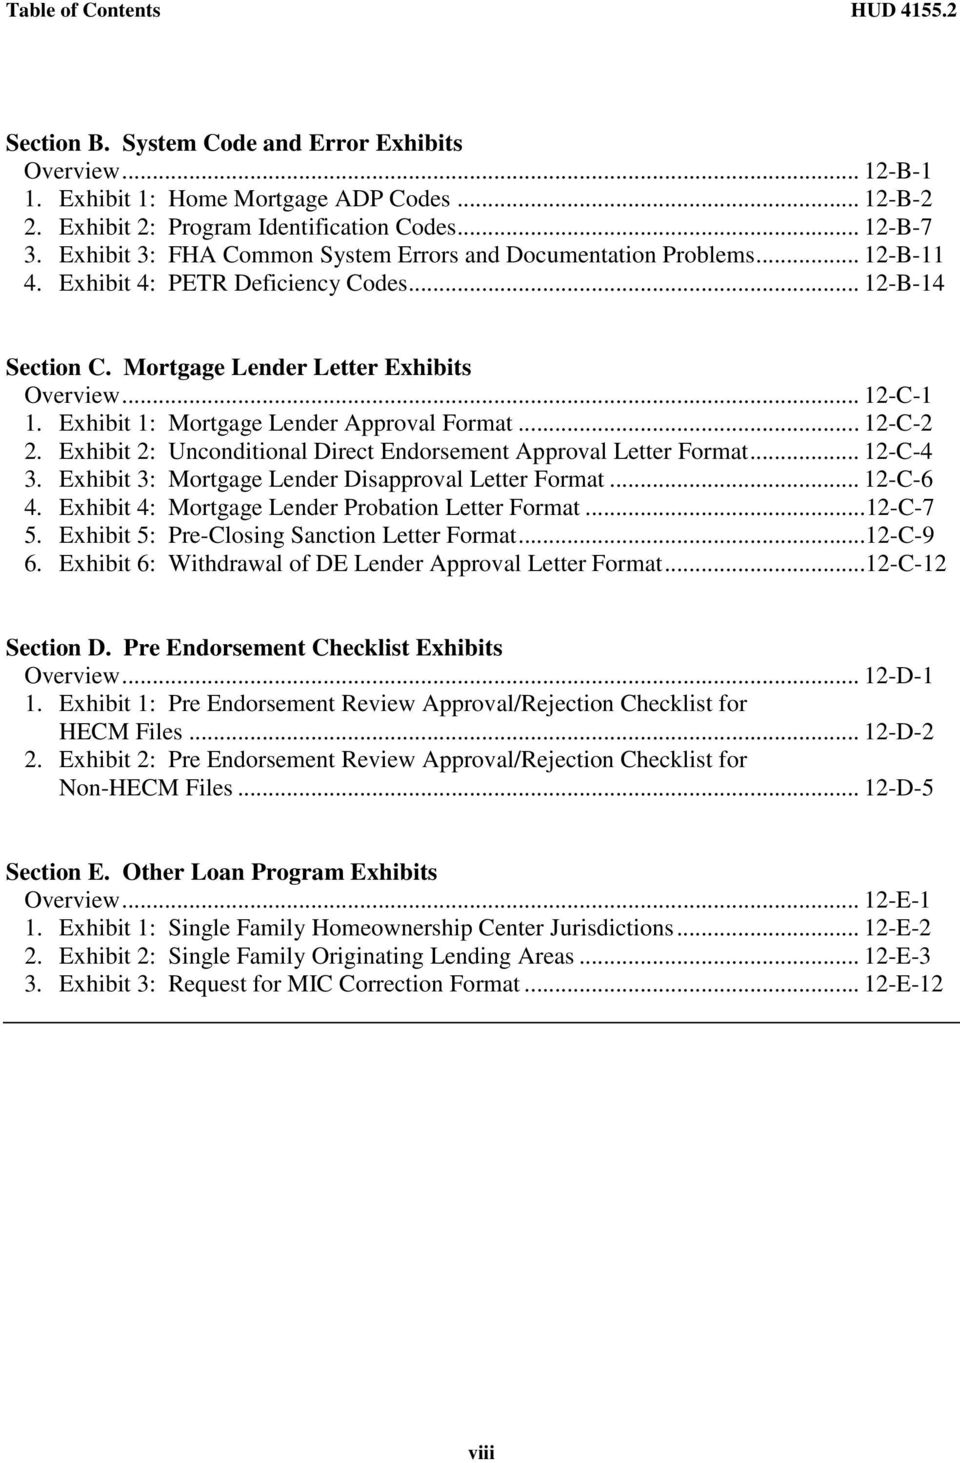 HUD Lender S Guide To The Single Family Mortgage